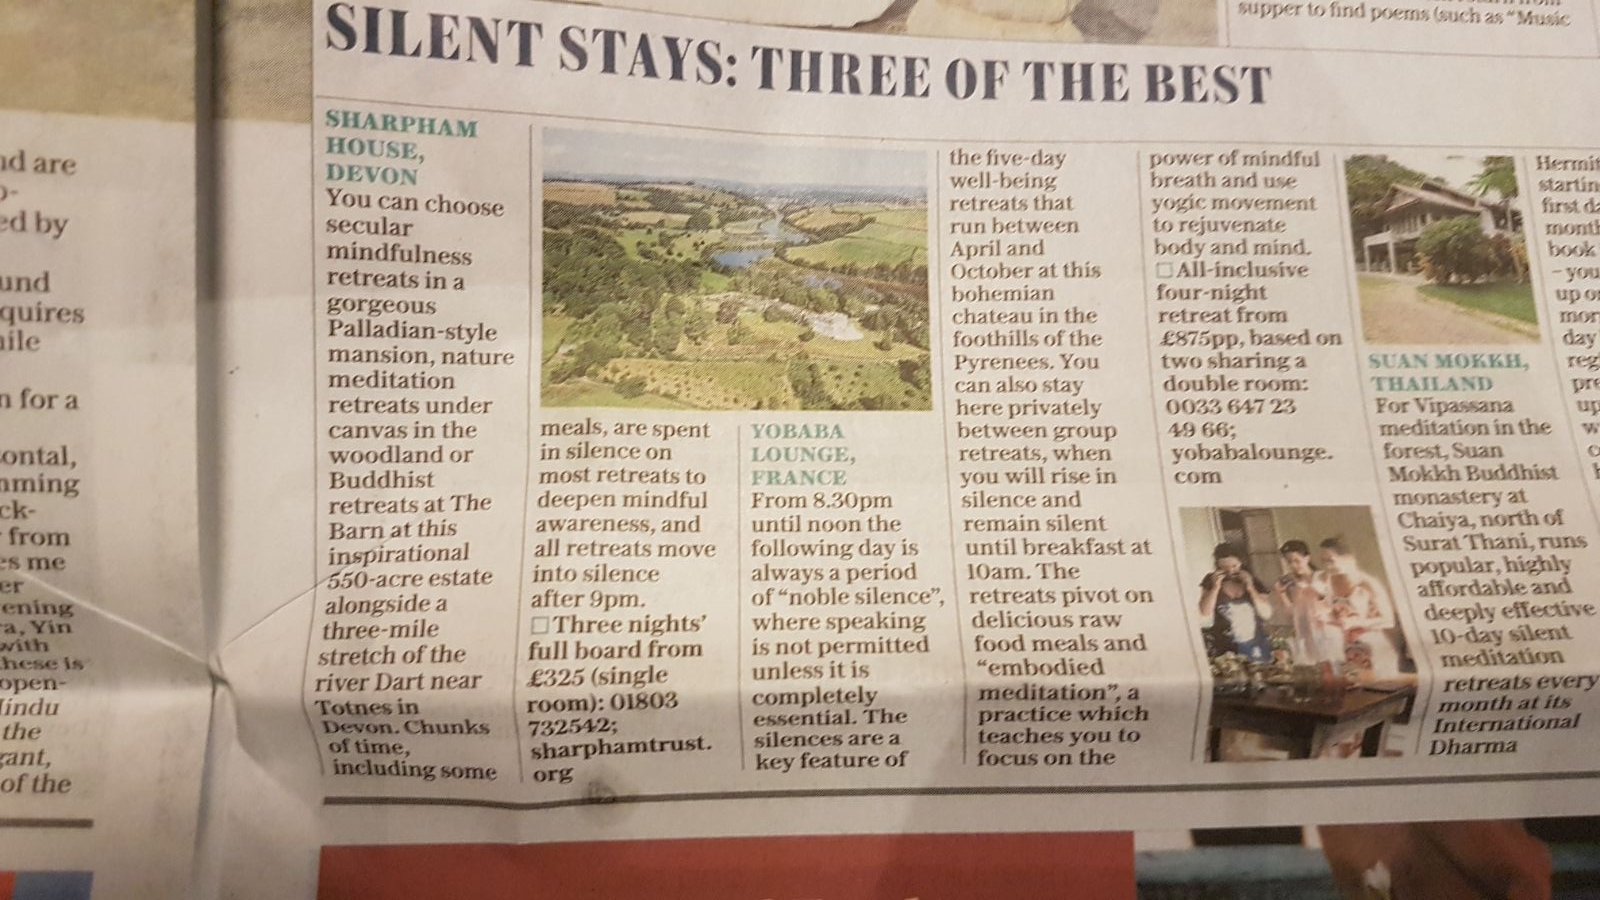 Yobaba Lounge Silent Stays Three of The Best in The Sunday Telephraph.JPG